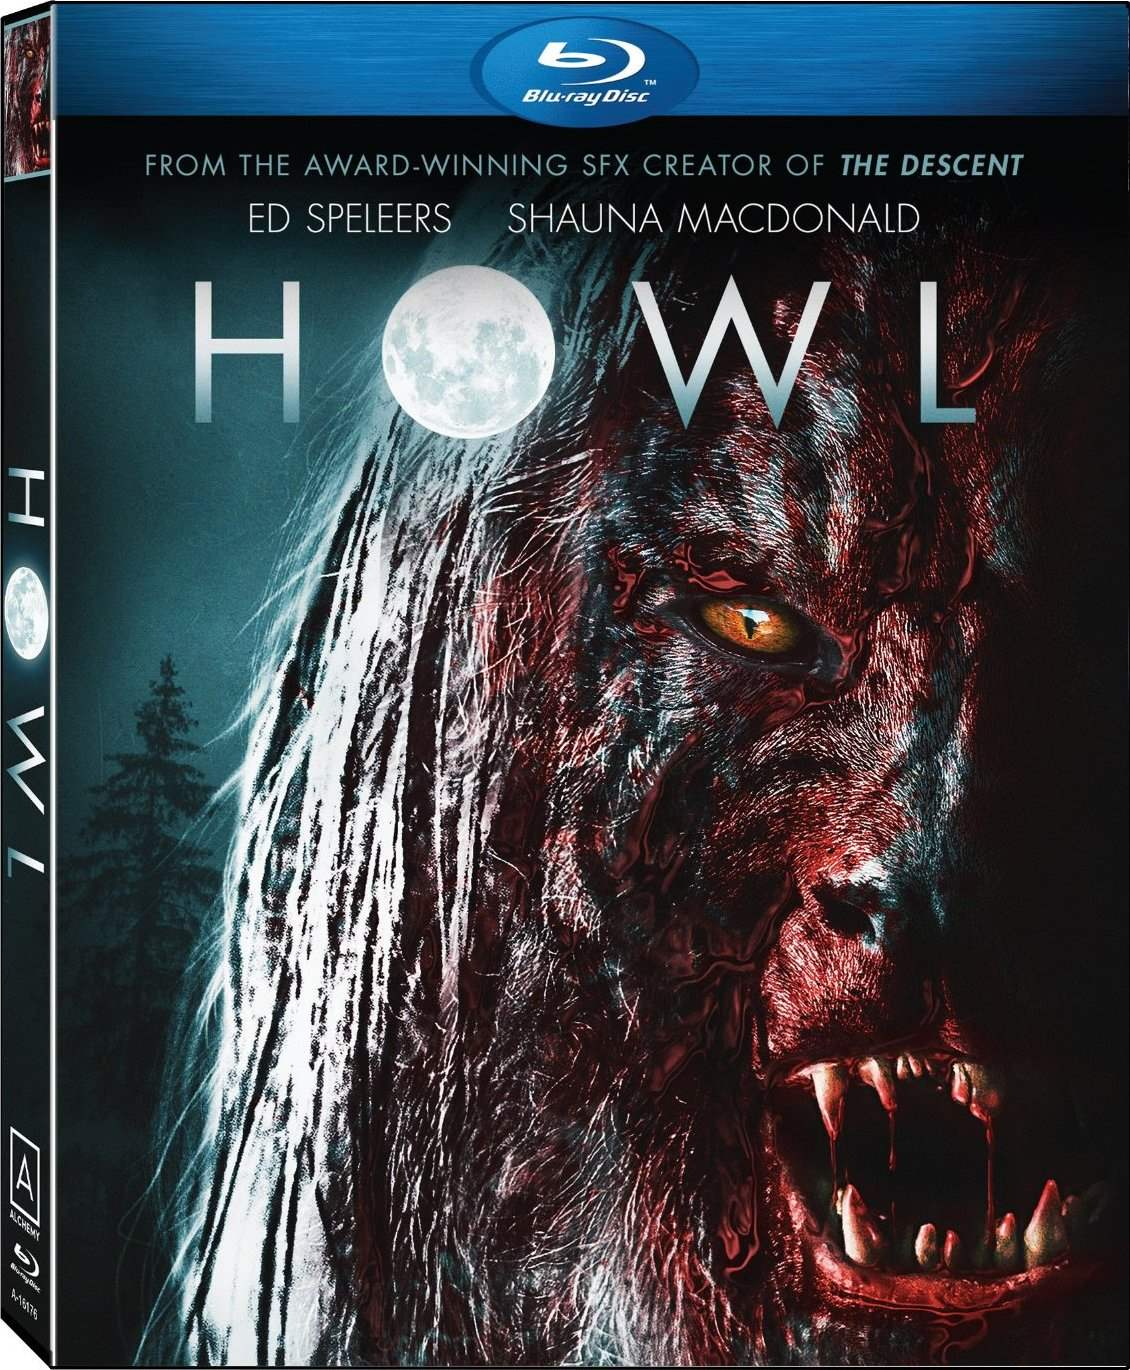 US Blu-Ray release cover for Howl